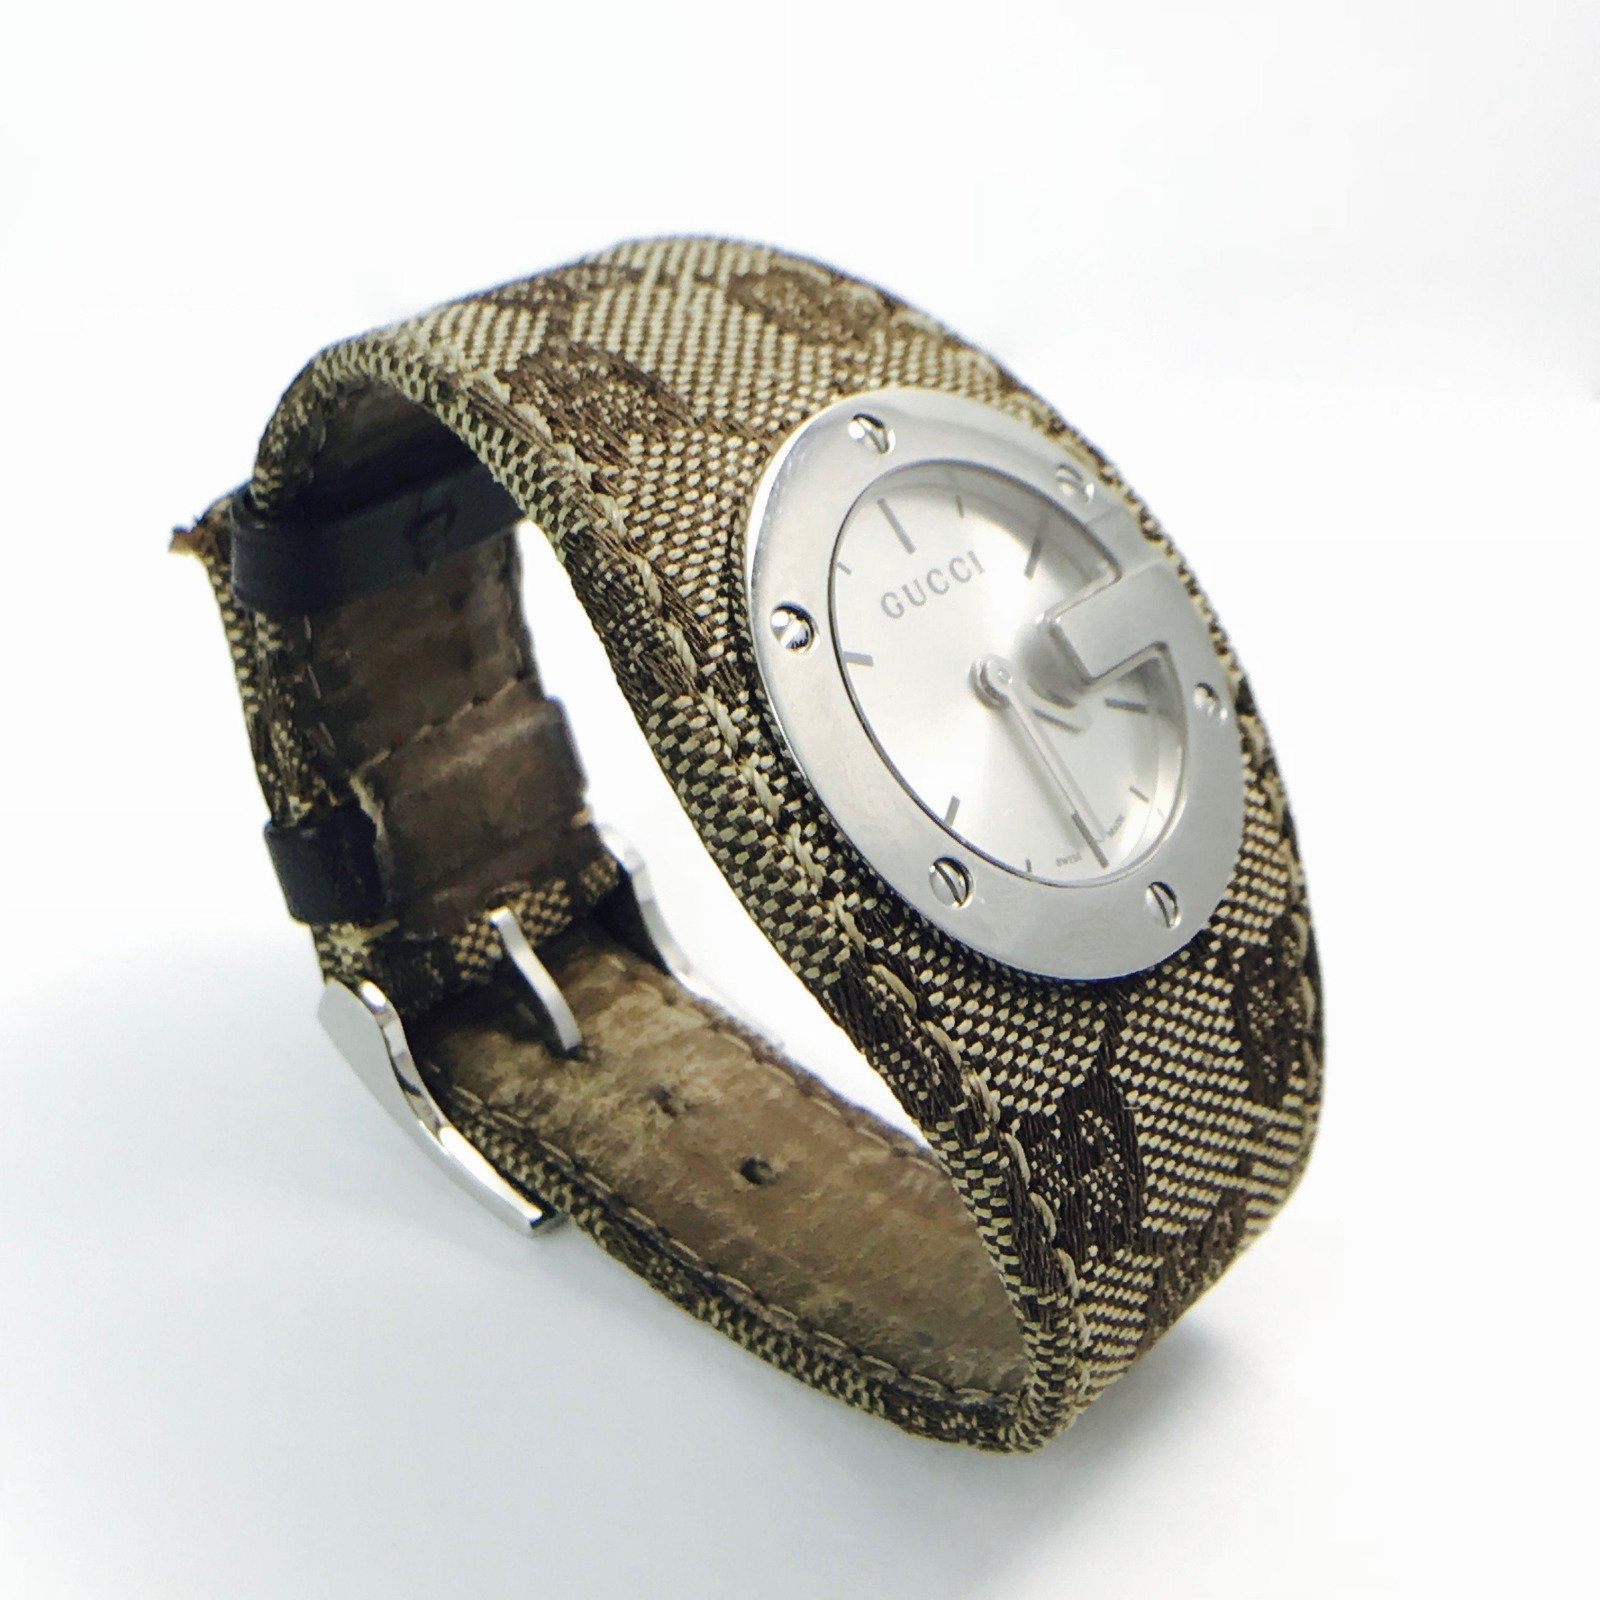 fb45a8f25c Gucci 104 G-Bandeau Quartz Wrist Watch in Stainless Steel– Oliver ...